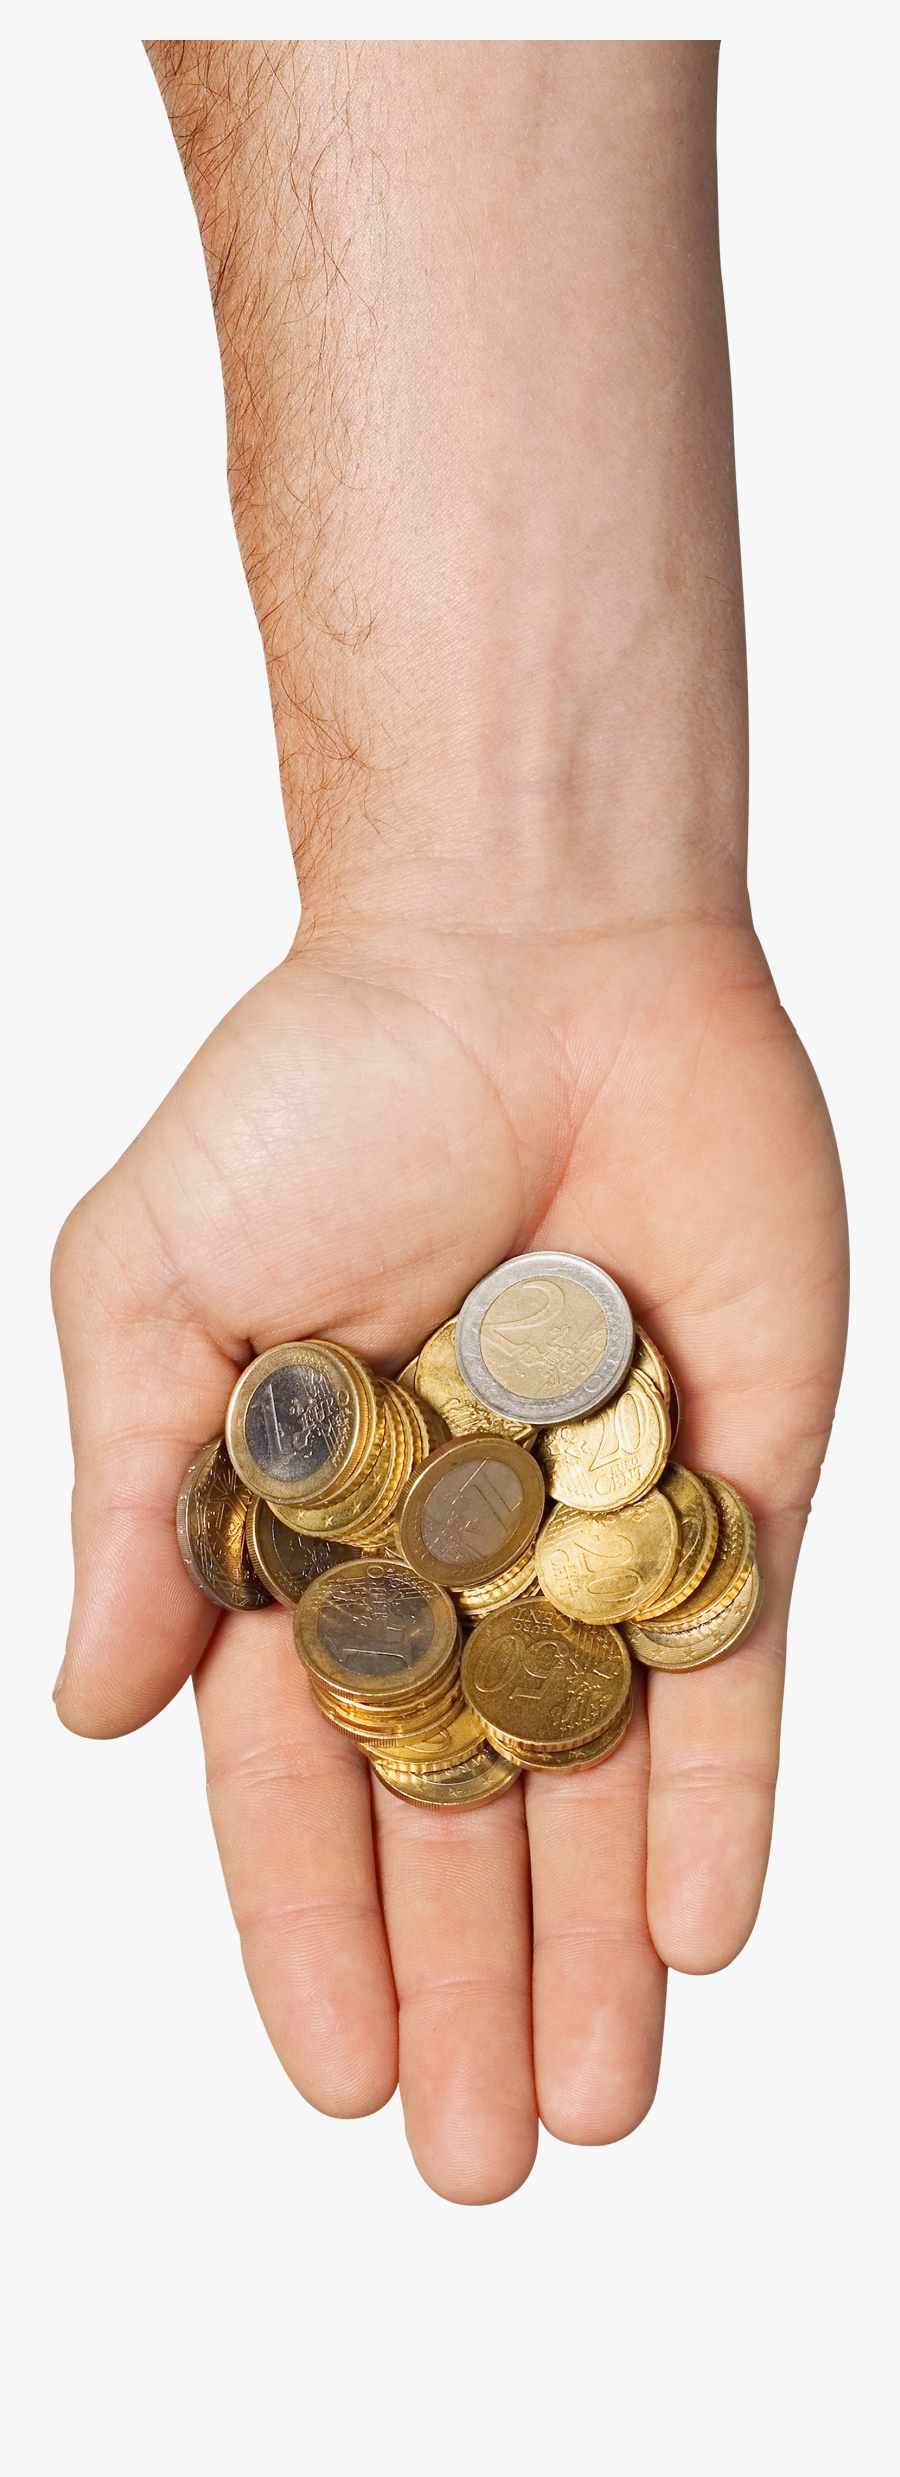 Png Free Images Pictures - Hands Hold Money Png, Transparent Clipart